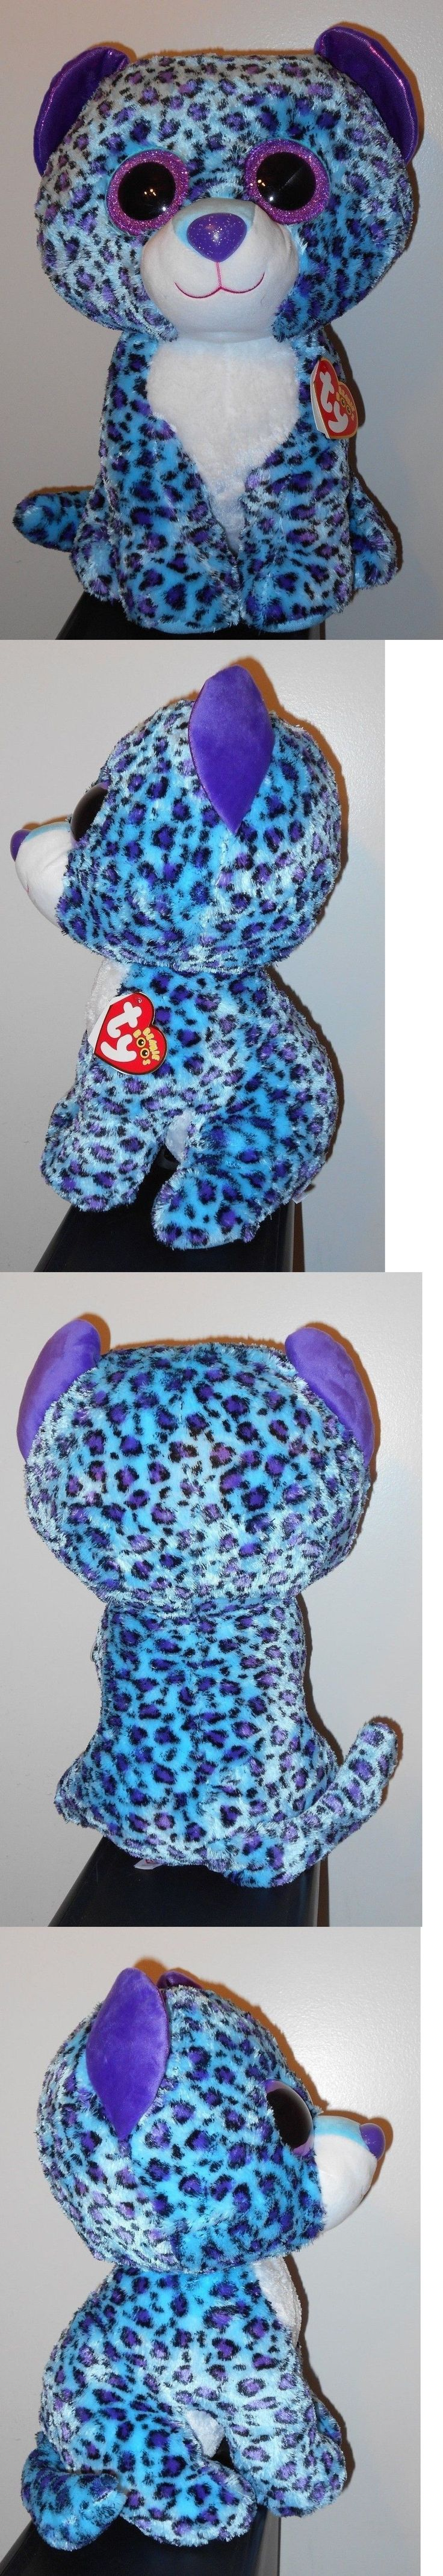 Current 438: Ty 16 Large Jumbo Beanie Boos ~ Lizzie The Leopard ~ Claires Exclusive ~ New -> BUY IT NOW ONLY: $44.9 on eBay!